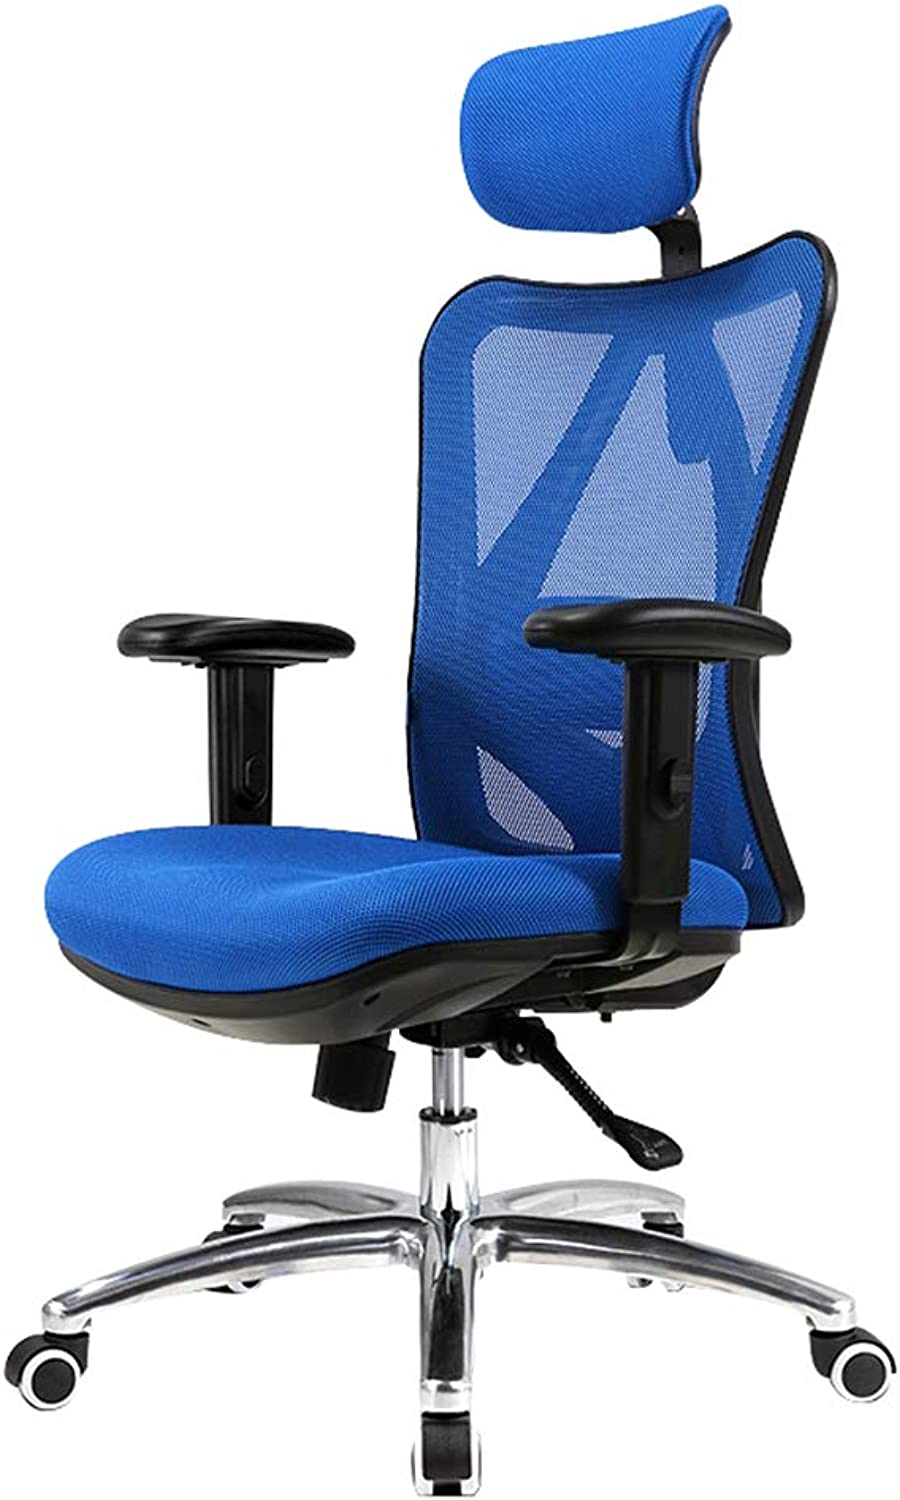 Office Chairs Desk Chairs Home Office Furniture Computer Chair, Ergonomic Design Computer Chair Home Study Chair Waist Office Chair E-Sports Chair Boss Free Swivel Chair Adult Game Chair